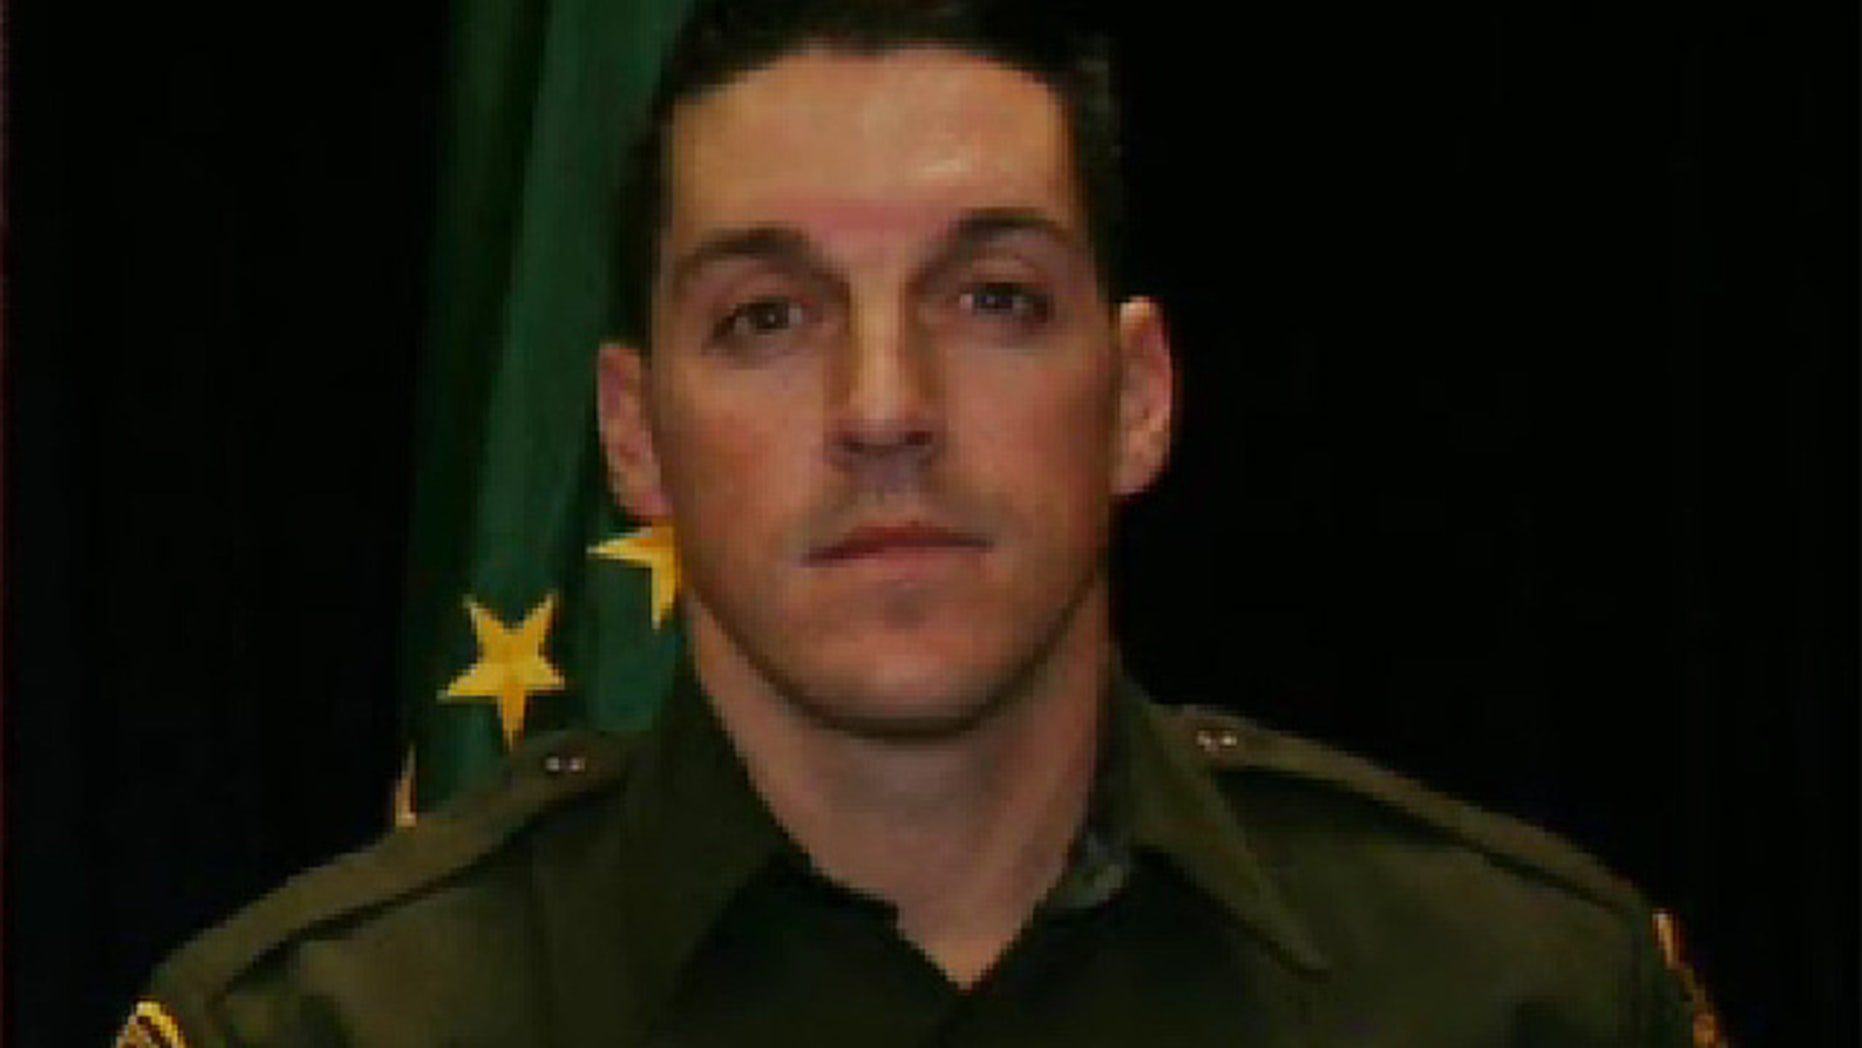 Agent Brian A. Terry, 40, was killed on Dec. 14 near Rio Rico, Ariz., according to a statement released by U.S. Customs and Border Protection officials. (FNC)